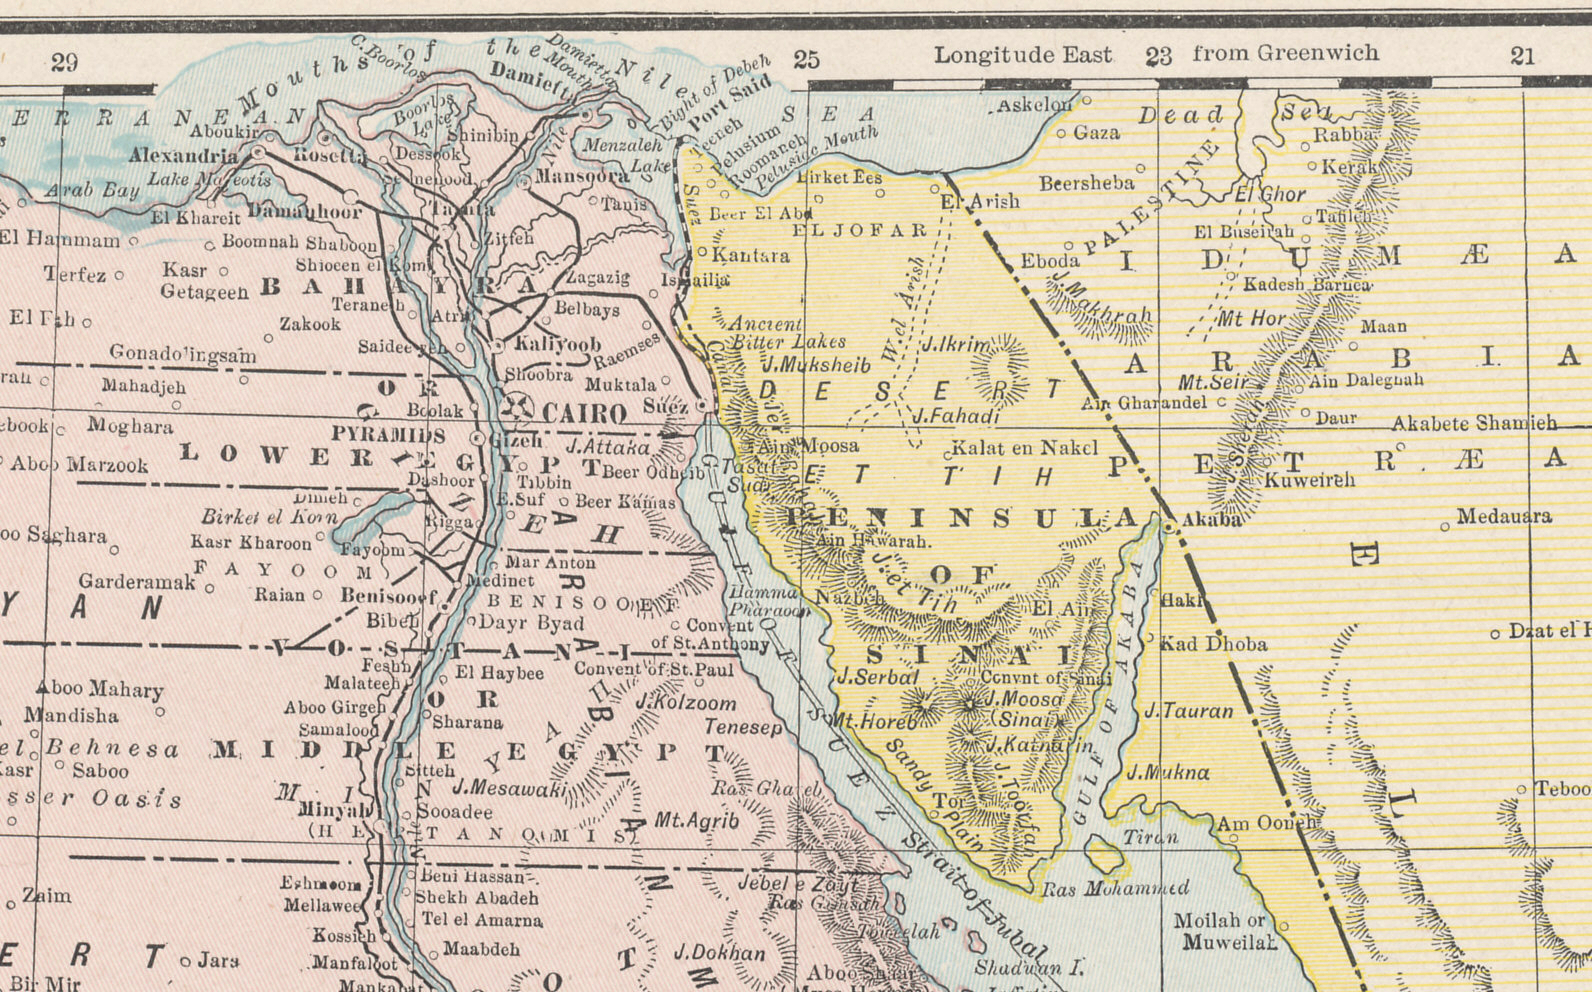 Northern Egypt, the Suez Canal, and Sinai from Cram's 1896 Railway Map of the Turkish Empire.